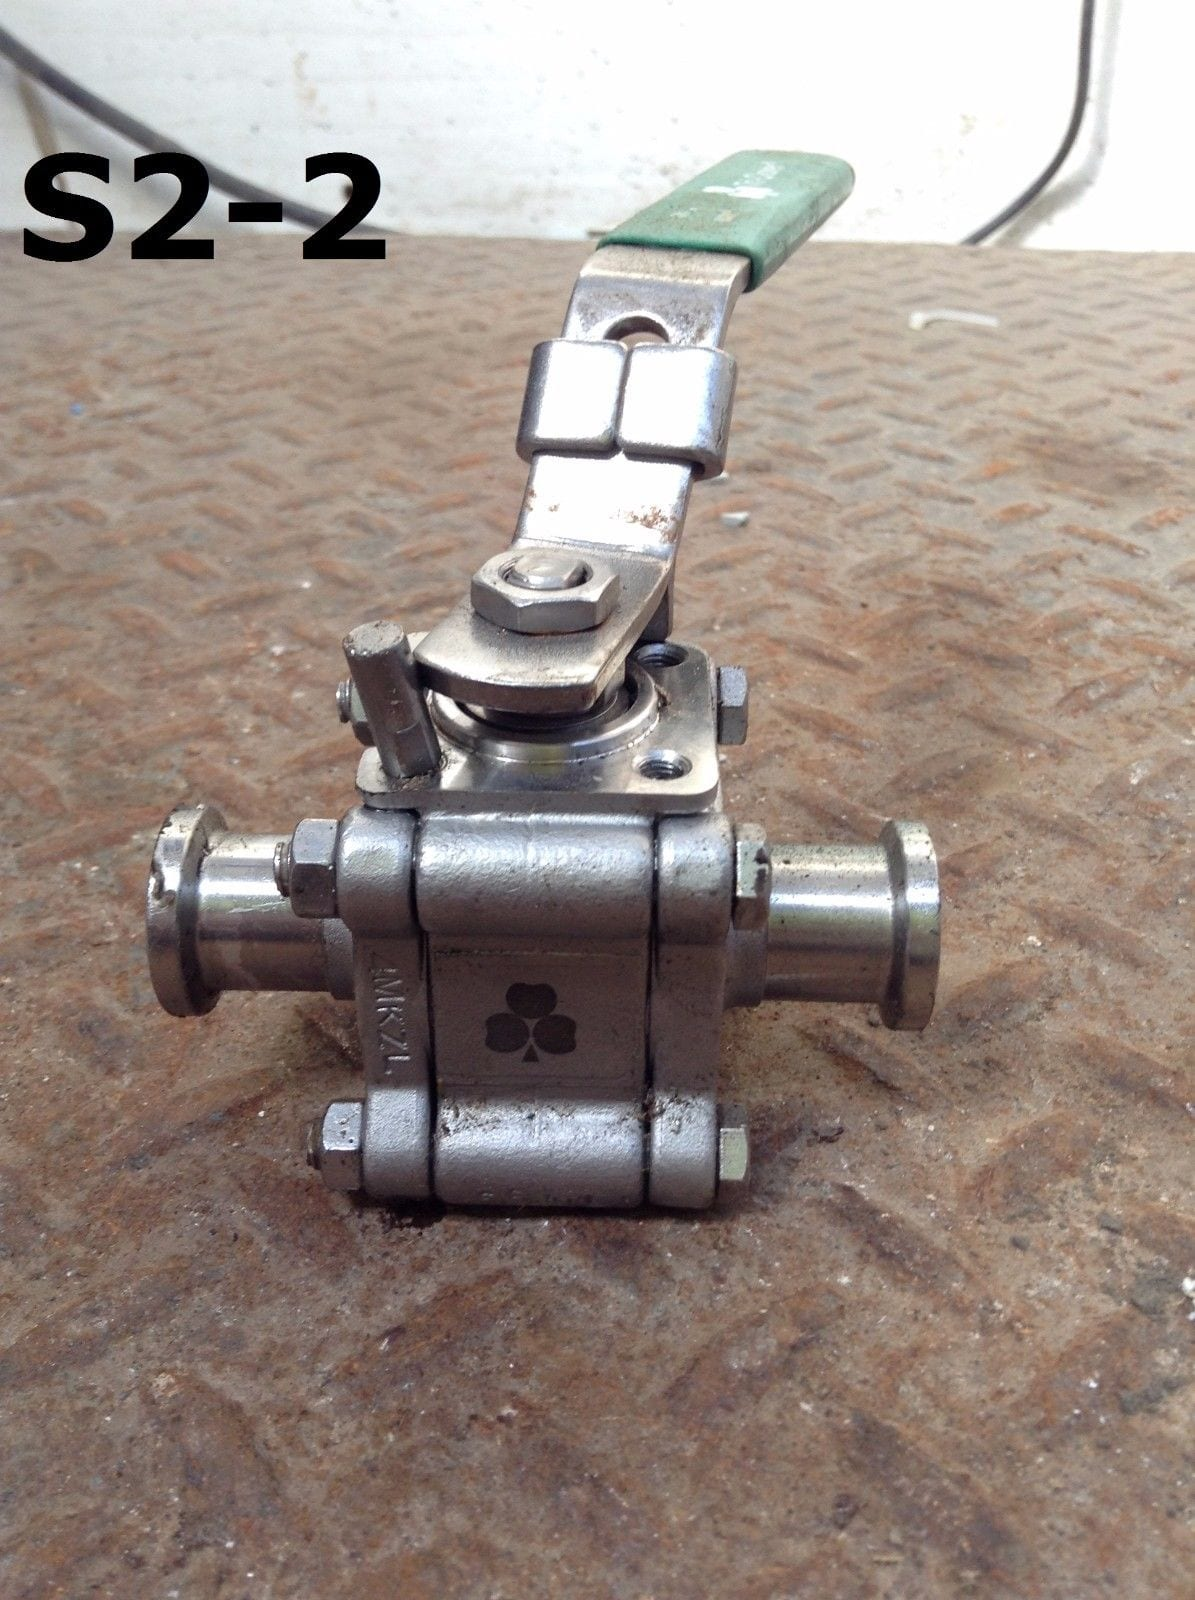 Tri clover quot l stainless steel manual sanitary ball